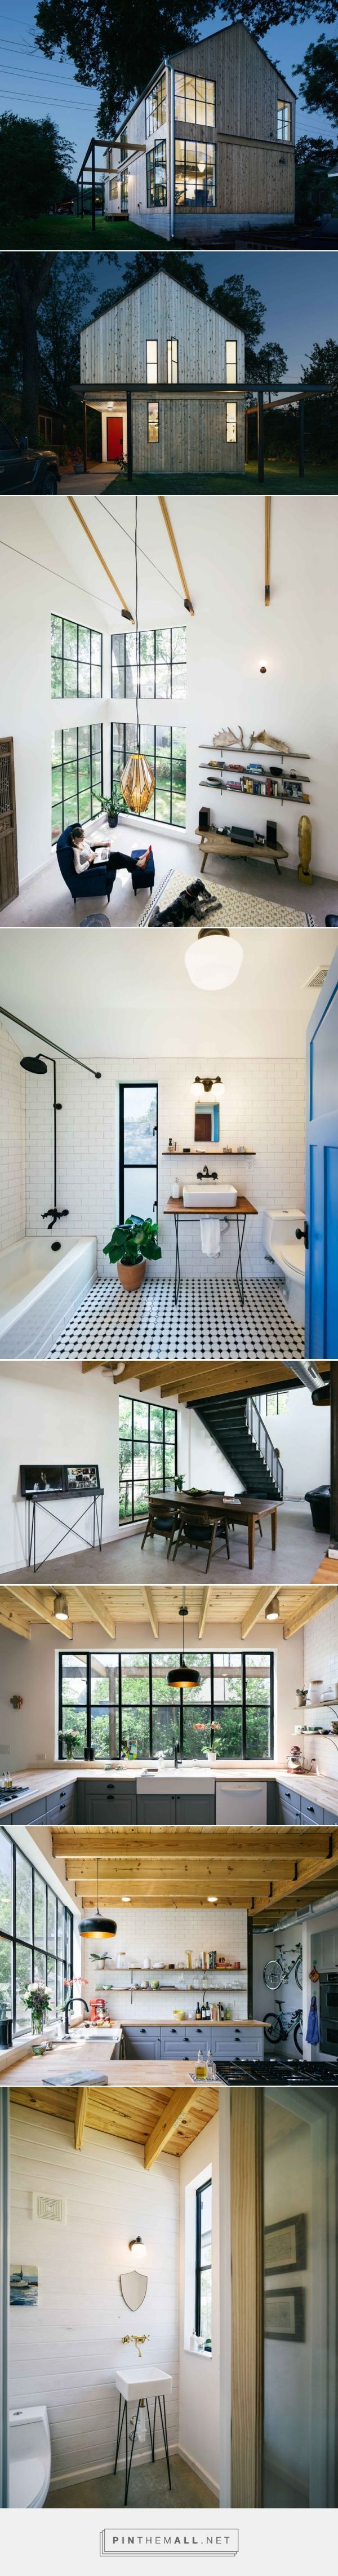 Bright, Personality-Filled Home Built on a Budget in Austin   Dwell - created via https://pinthemall.net